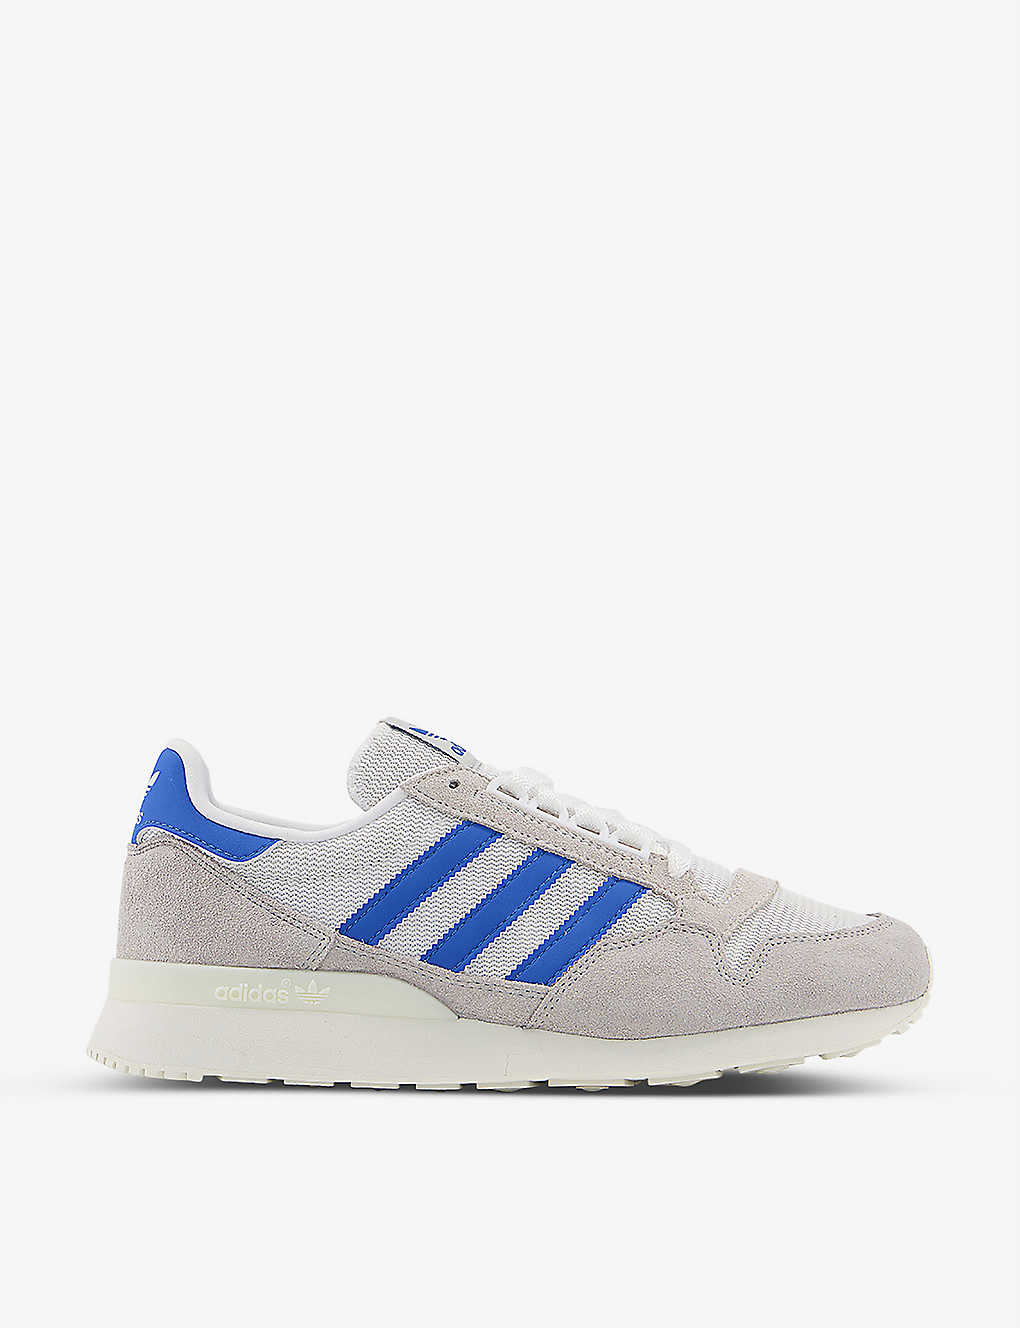 ADIDAS: ZX 500 RM suede and mesh trainers